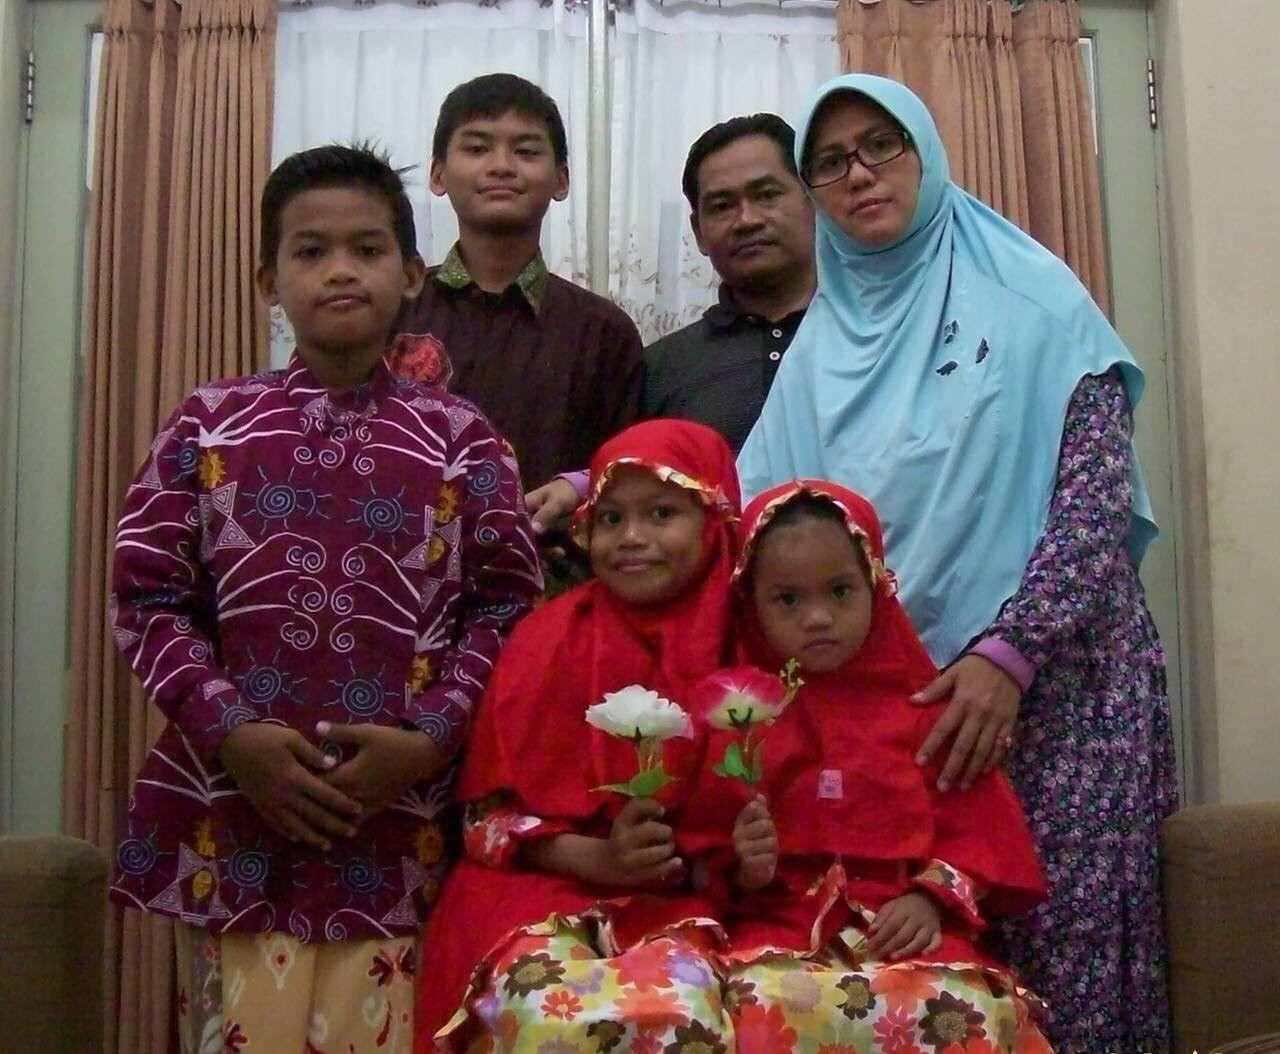 Photo Of The Family Of Six That Launched Deadly Suicide Attacks On Three Churches In Indonesia